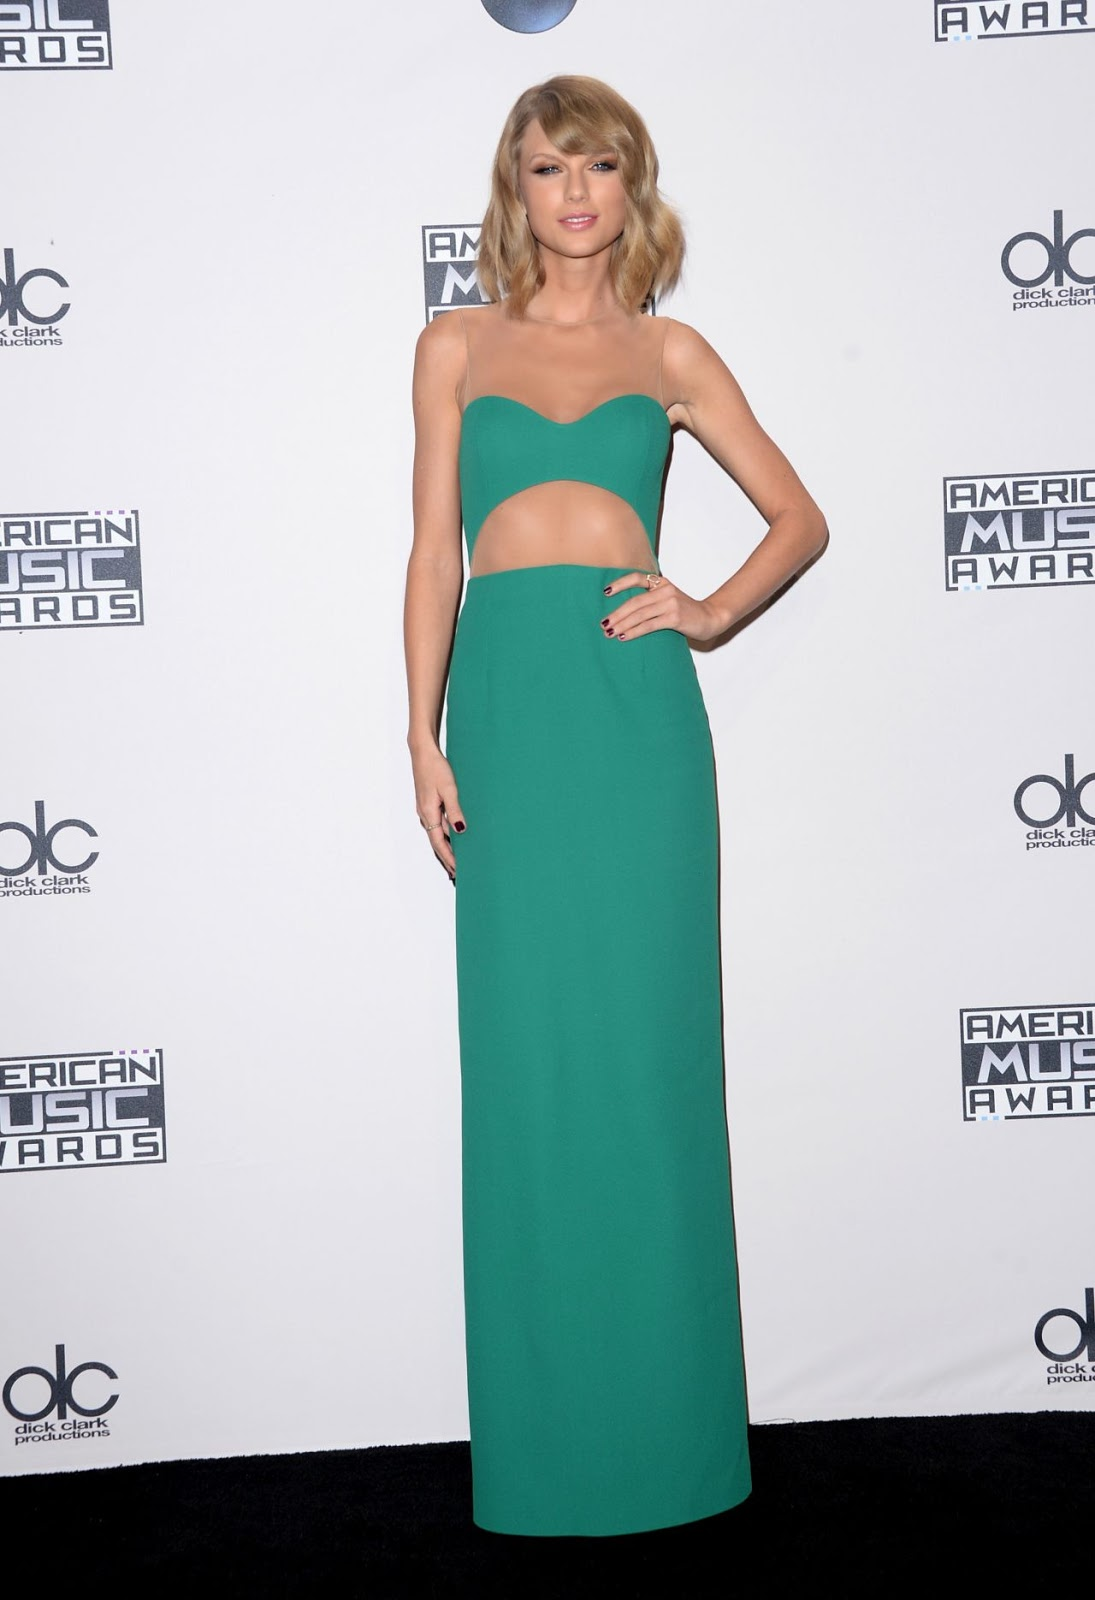 Taylor Swift stuns in an emerald Michael Kors gown at the 2014 American Music Awards